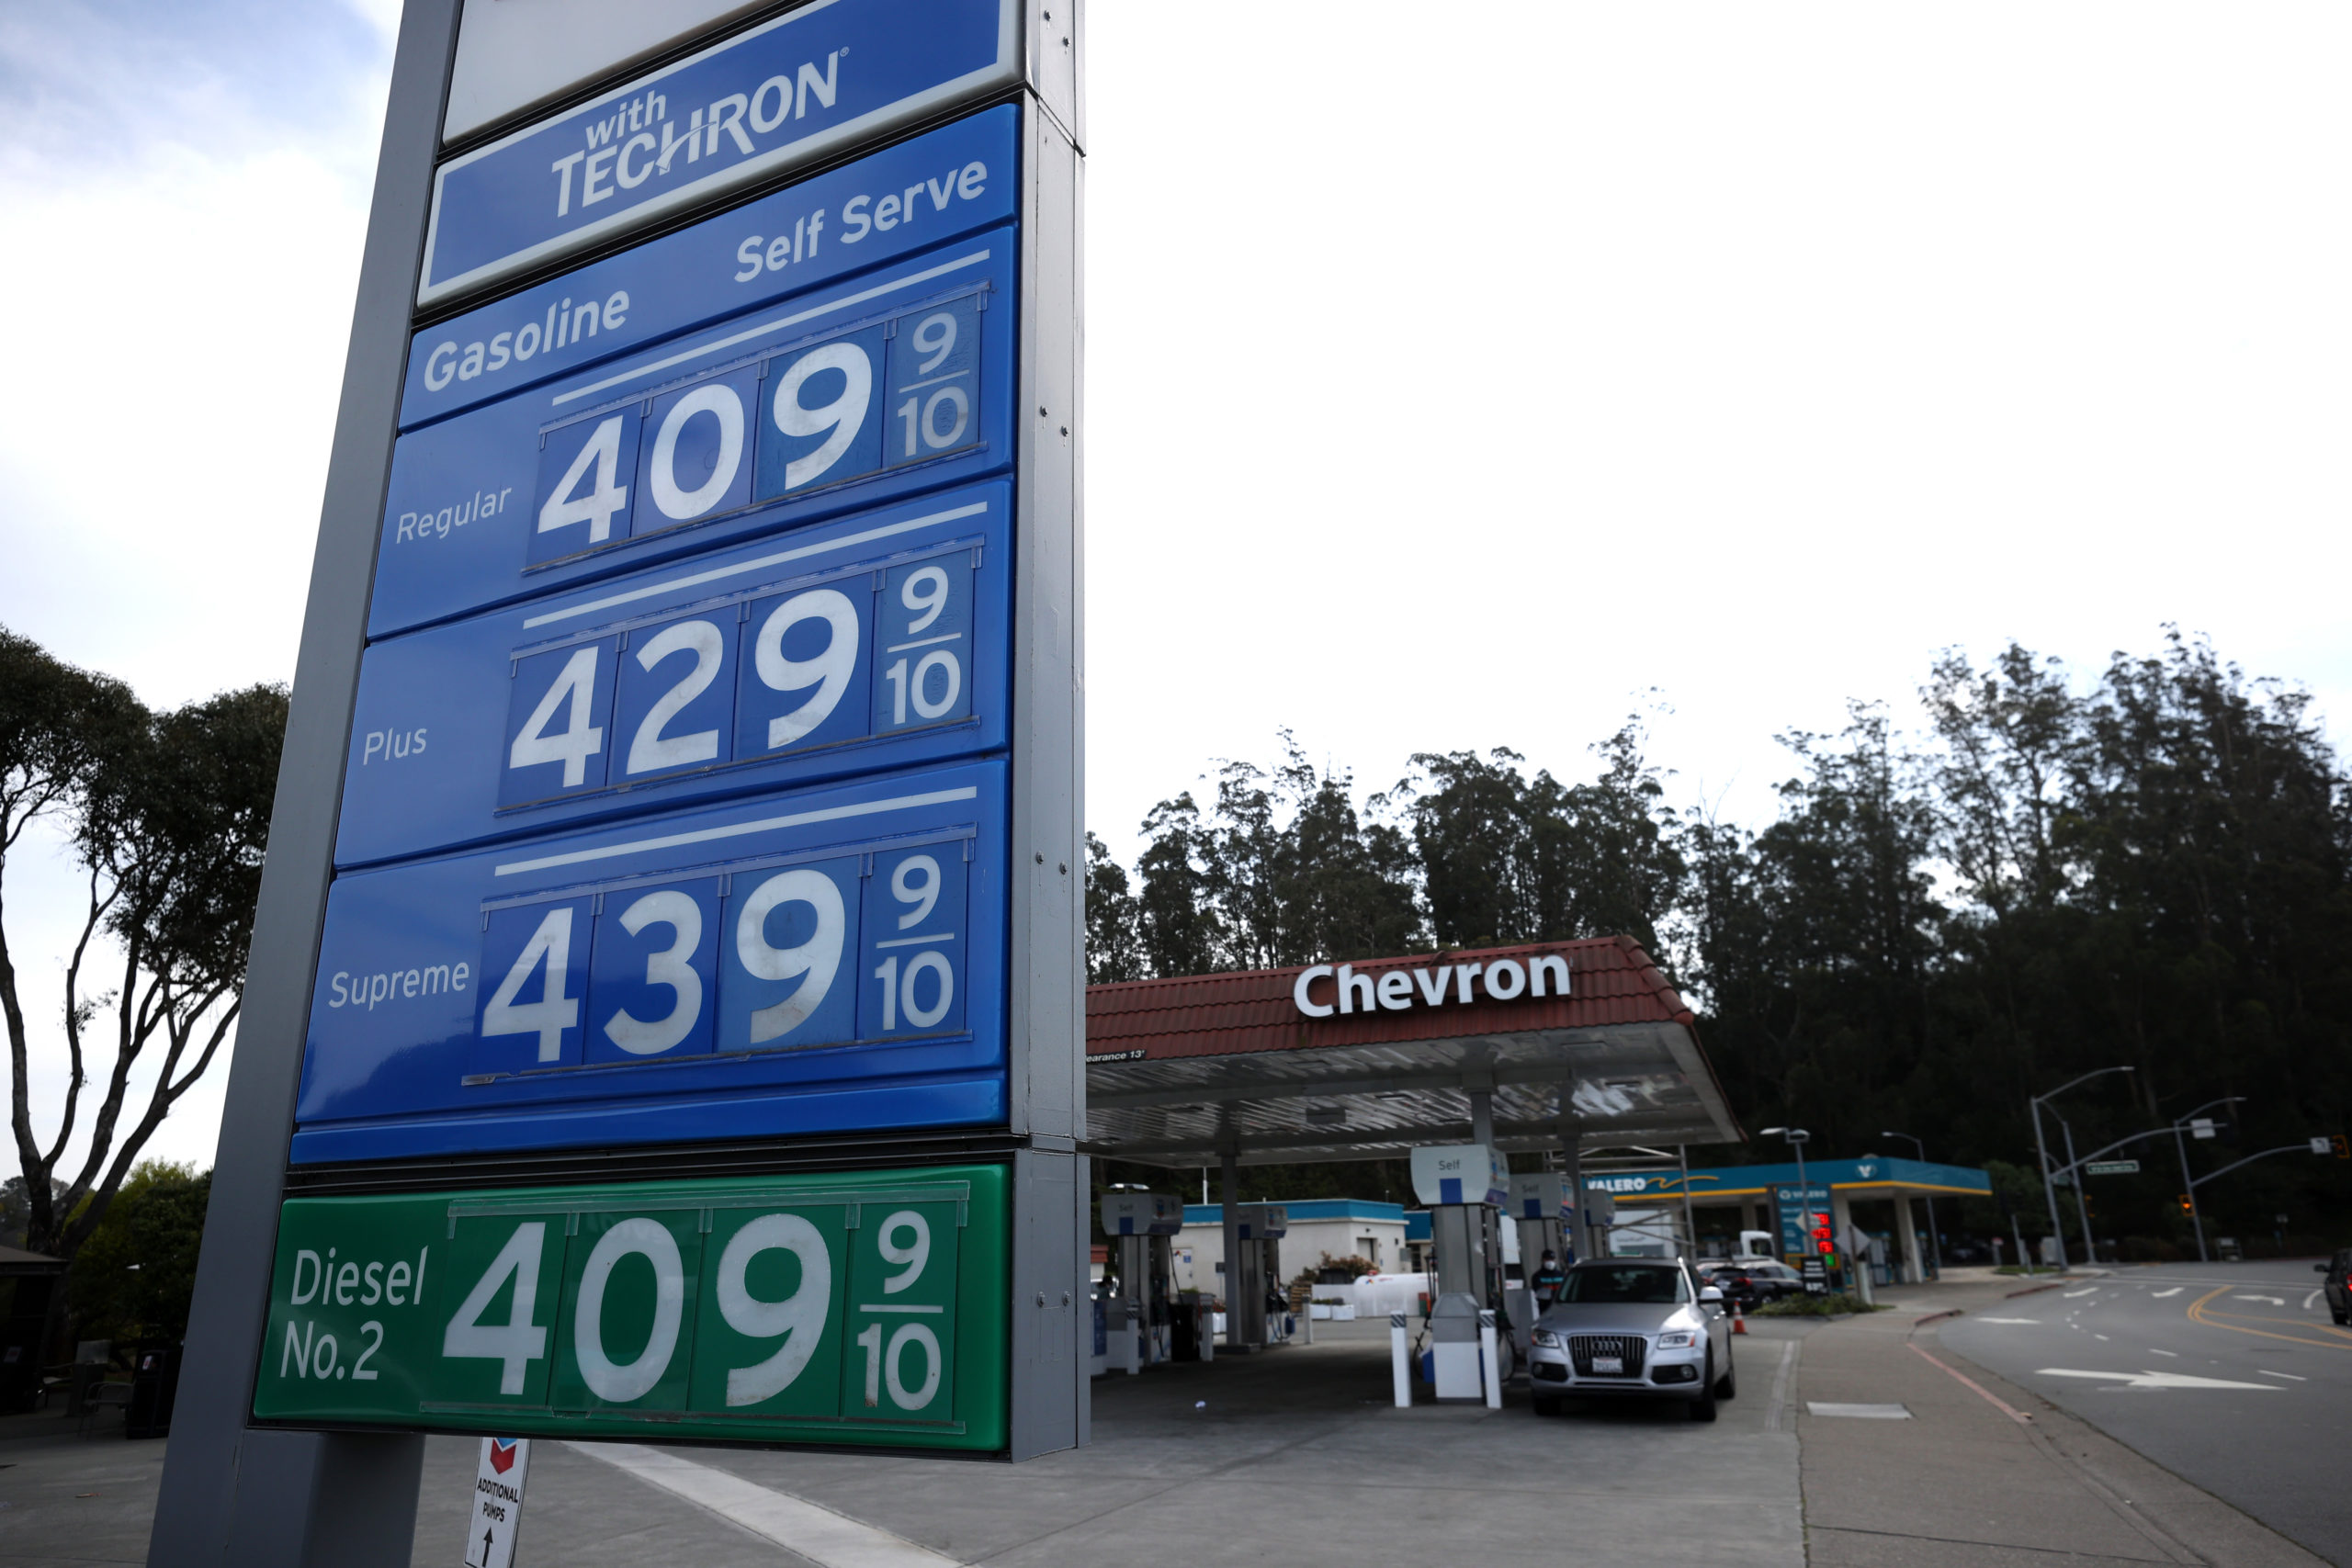 Gas prices over $4.00 per gallon are displayed at a Chevron gas station on March 3 in Mill Valley, California. (Justin Sullivan/Getty Images)